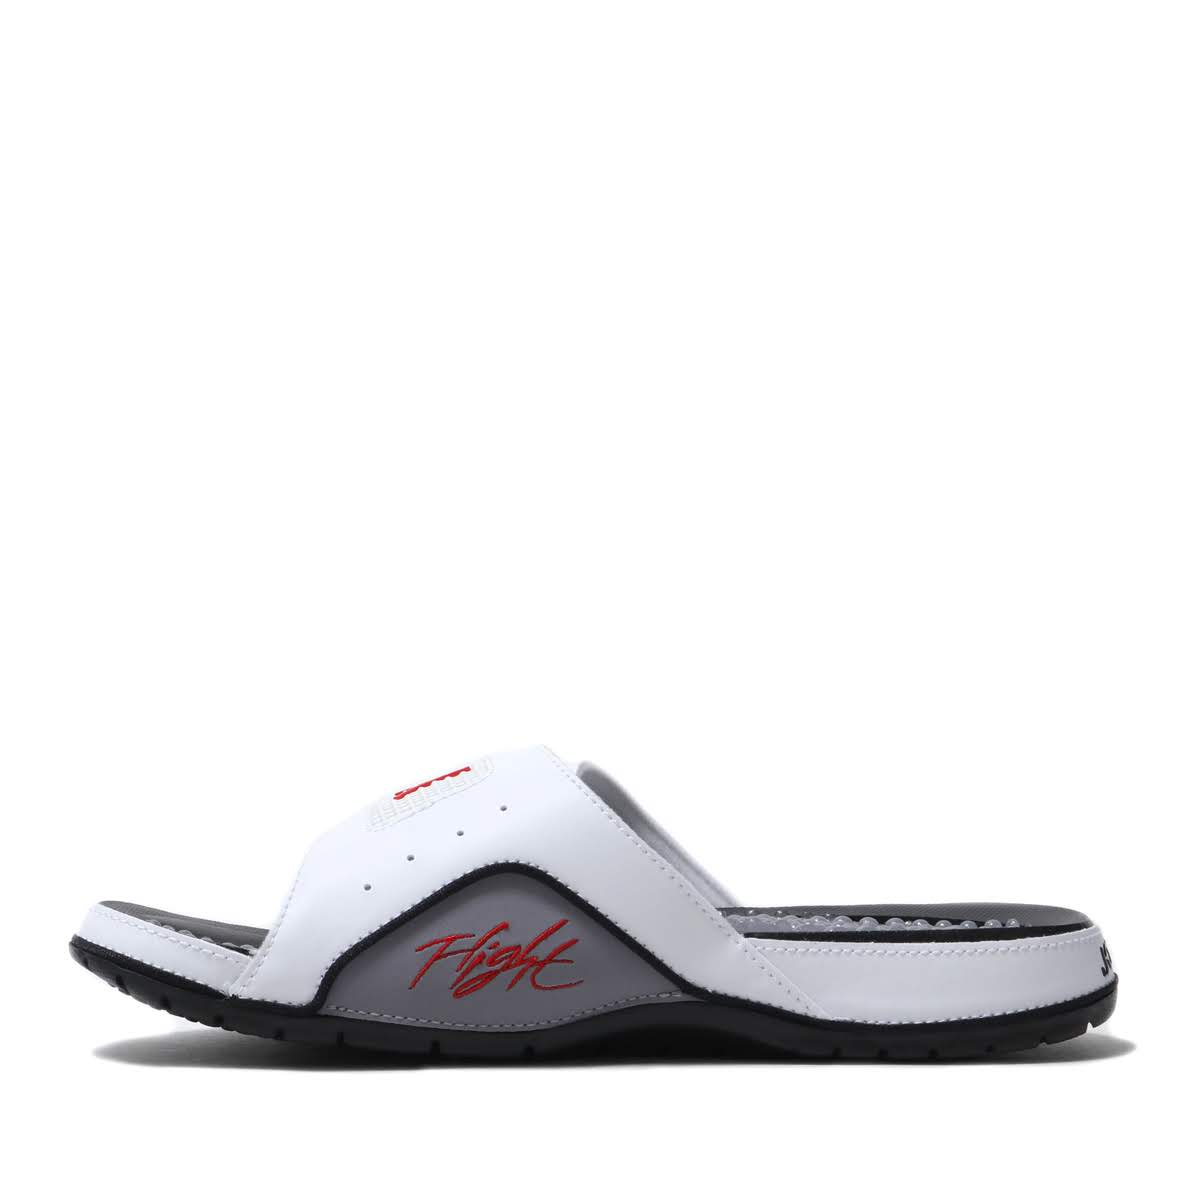 532225-116 New Nike Jordan Hydro 4 Retro Slide Sports Sandals Slippers White